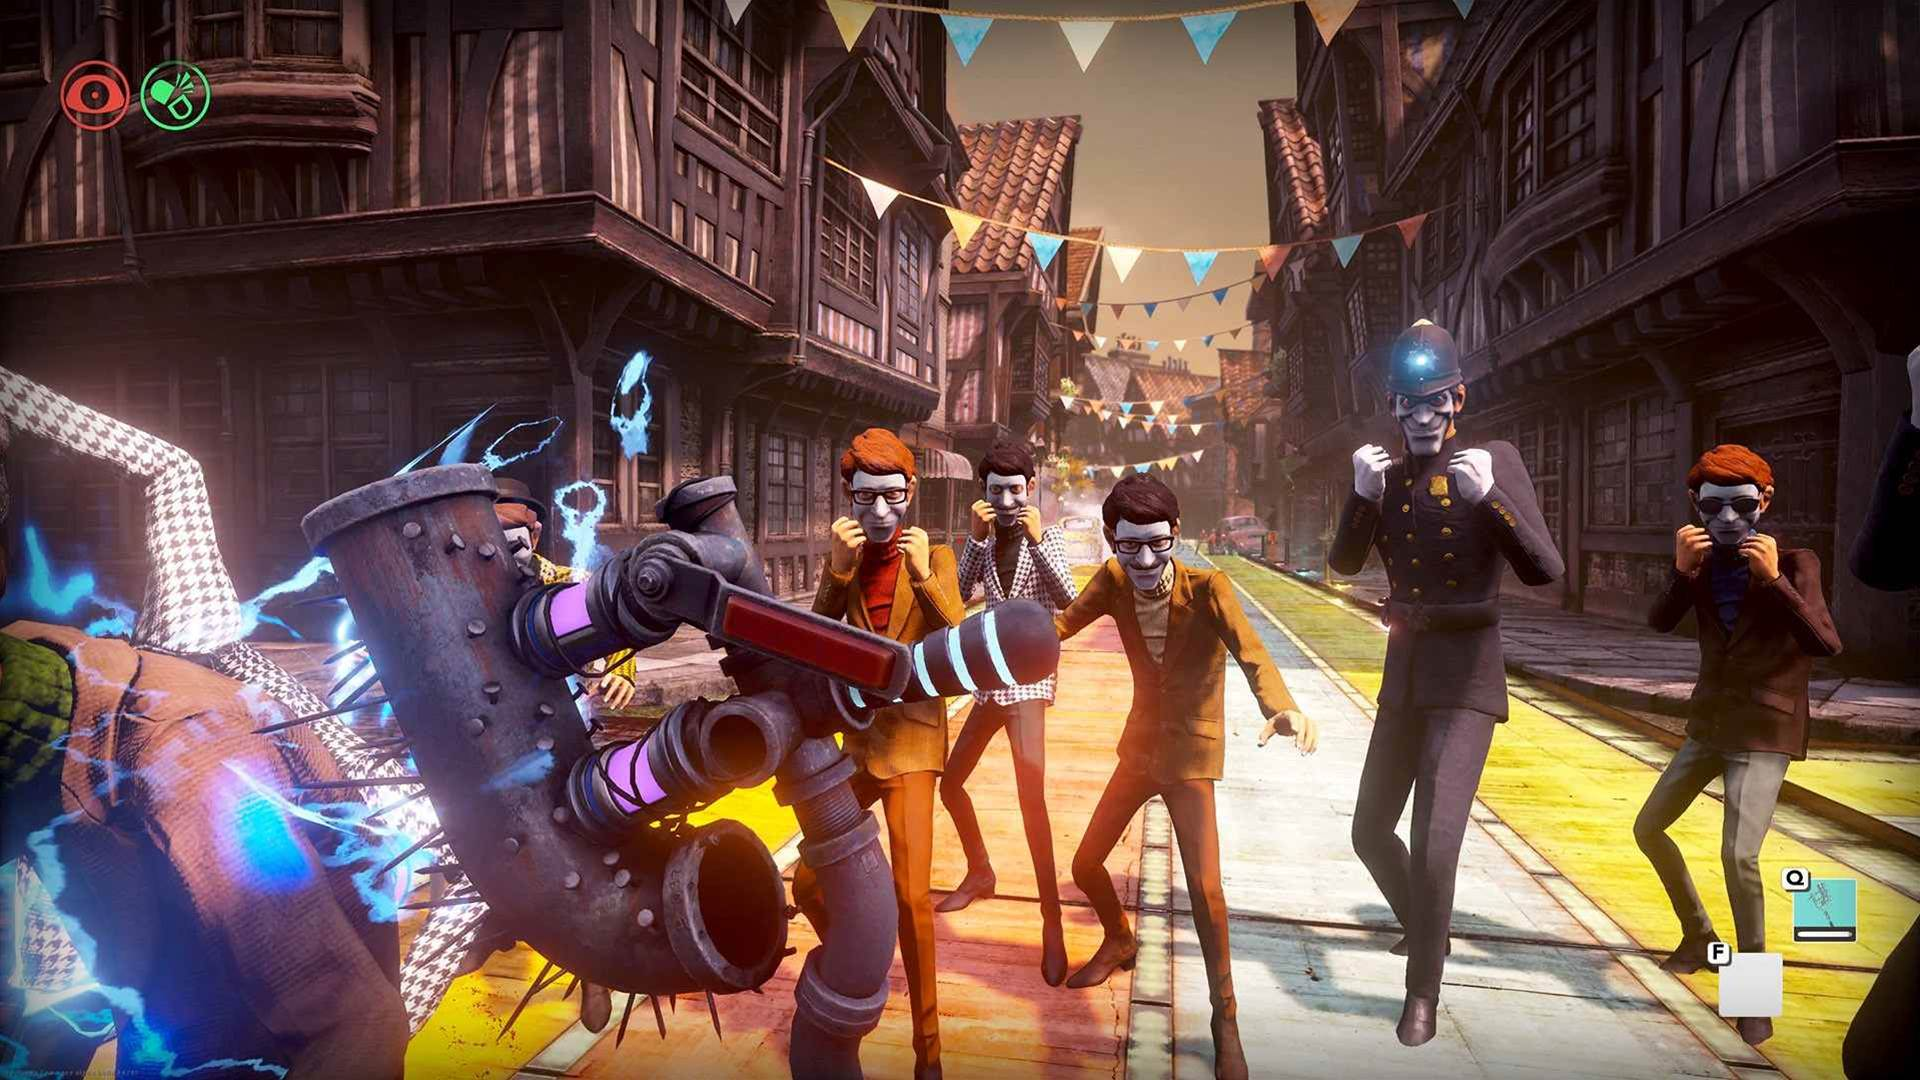 Not-so-happy screenshots from We Happy Few